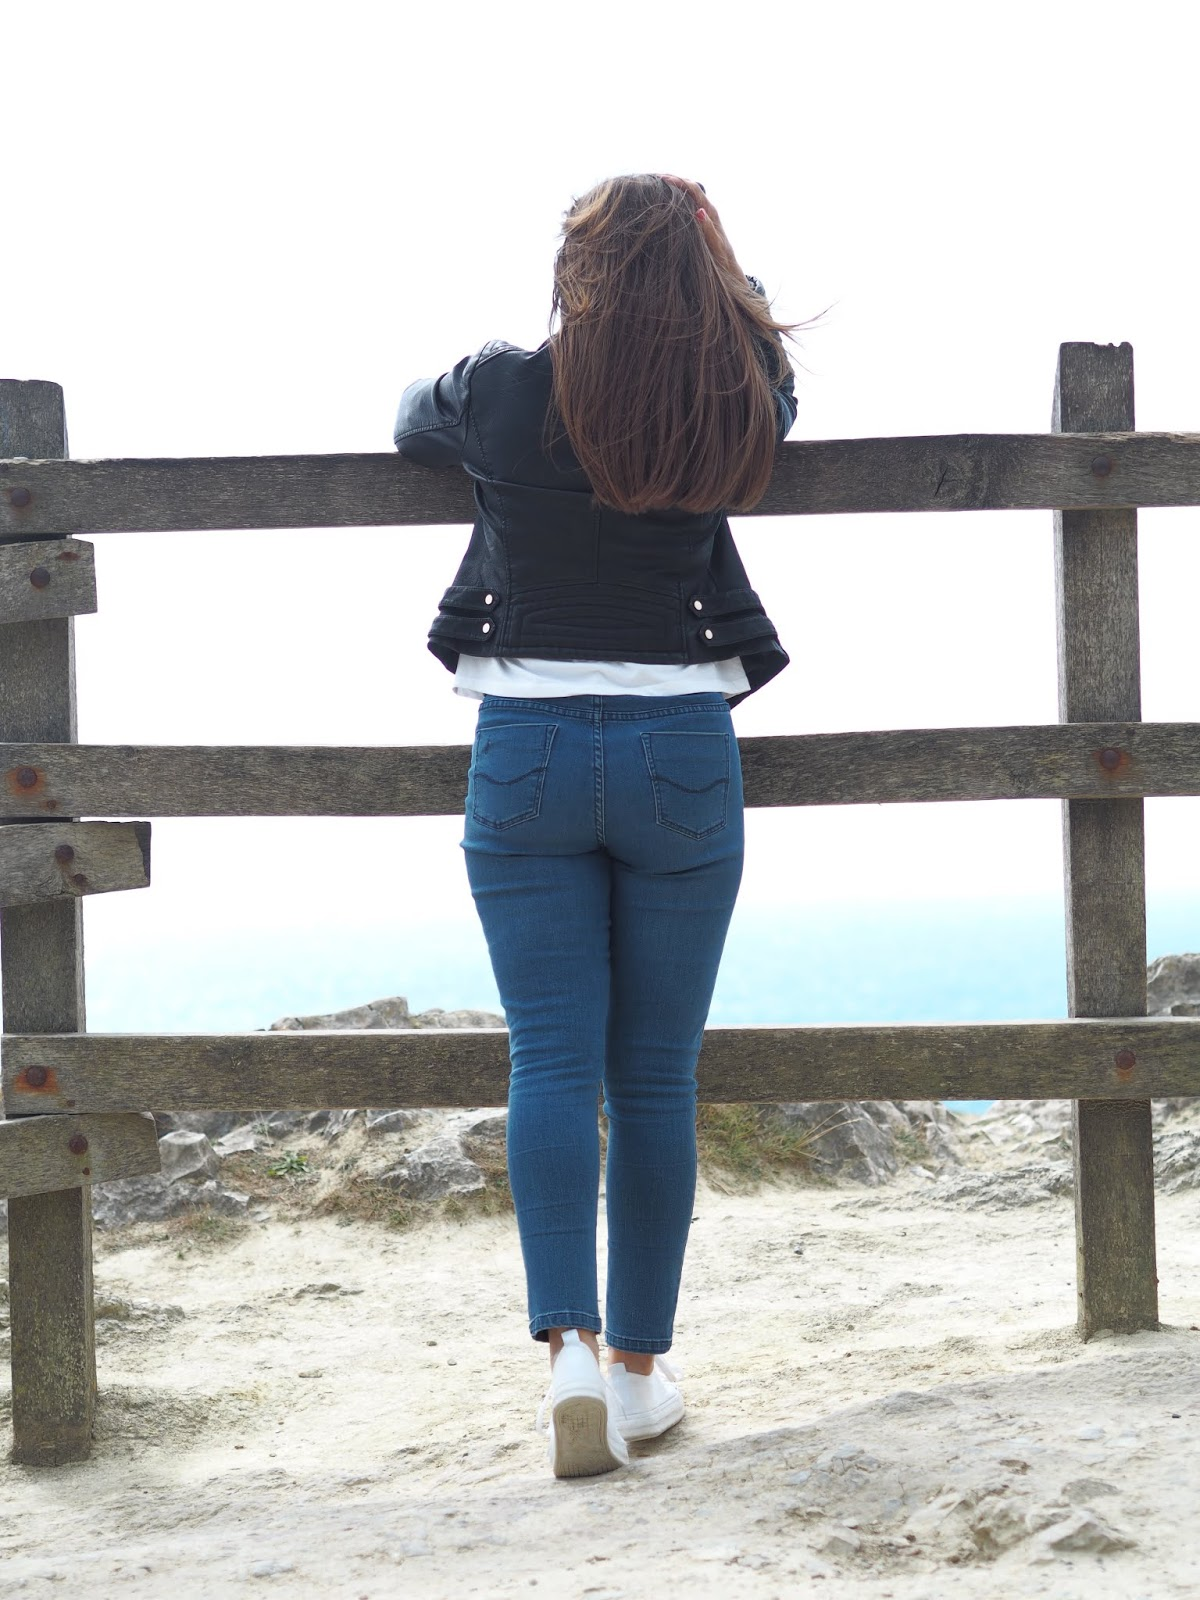 Lulworth Cove \ Looking out to sea